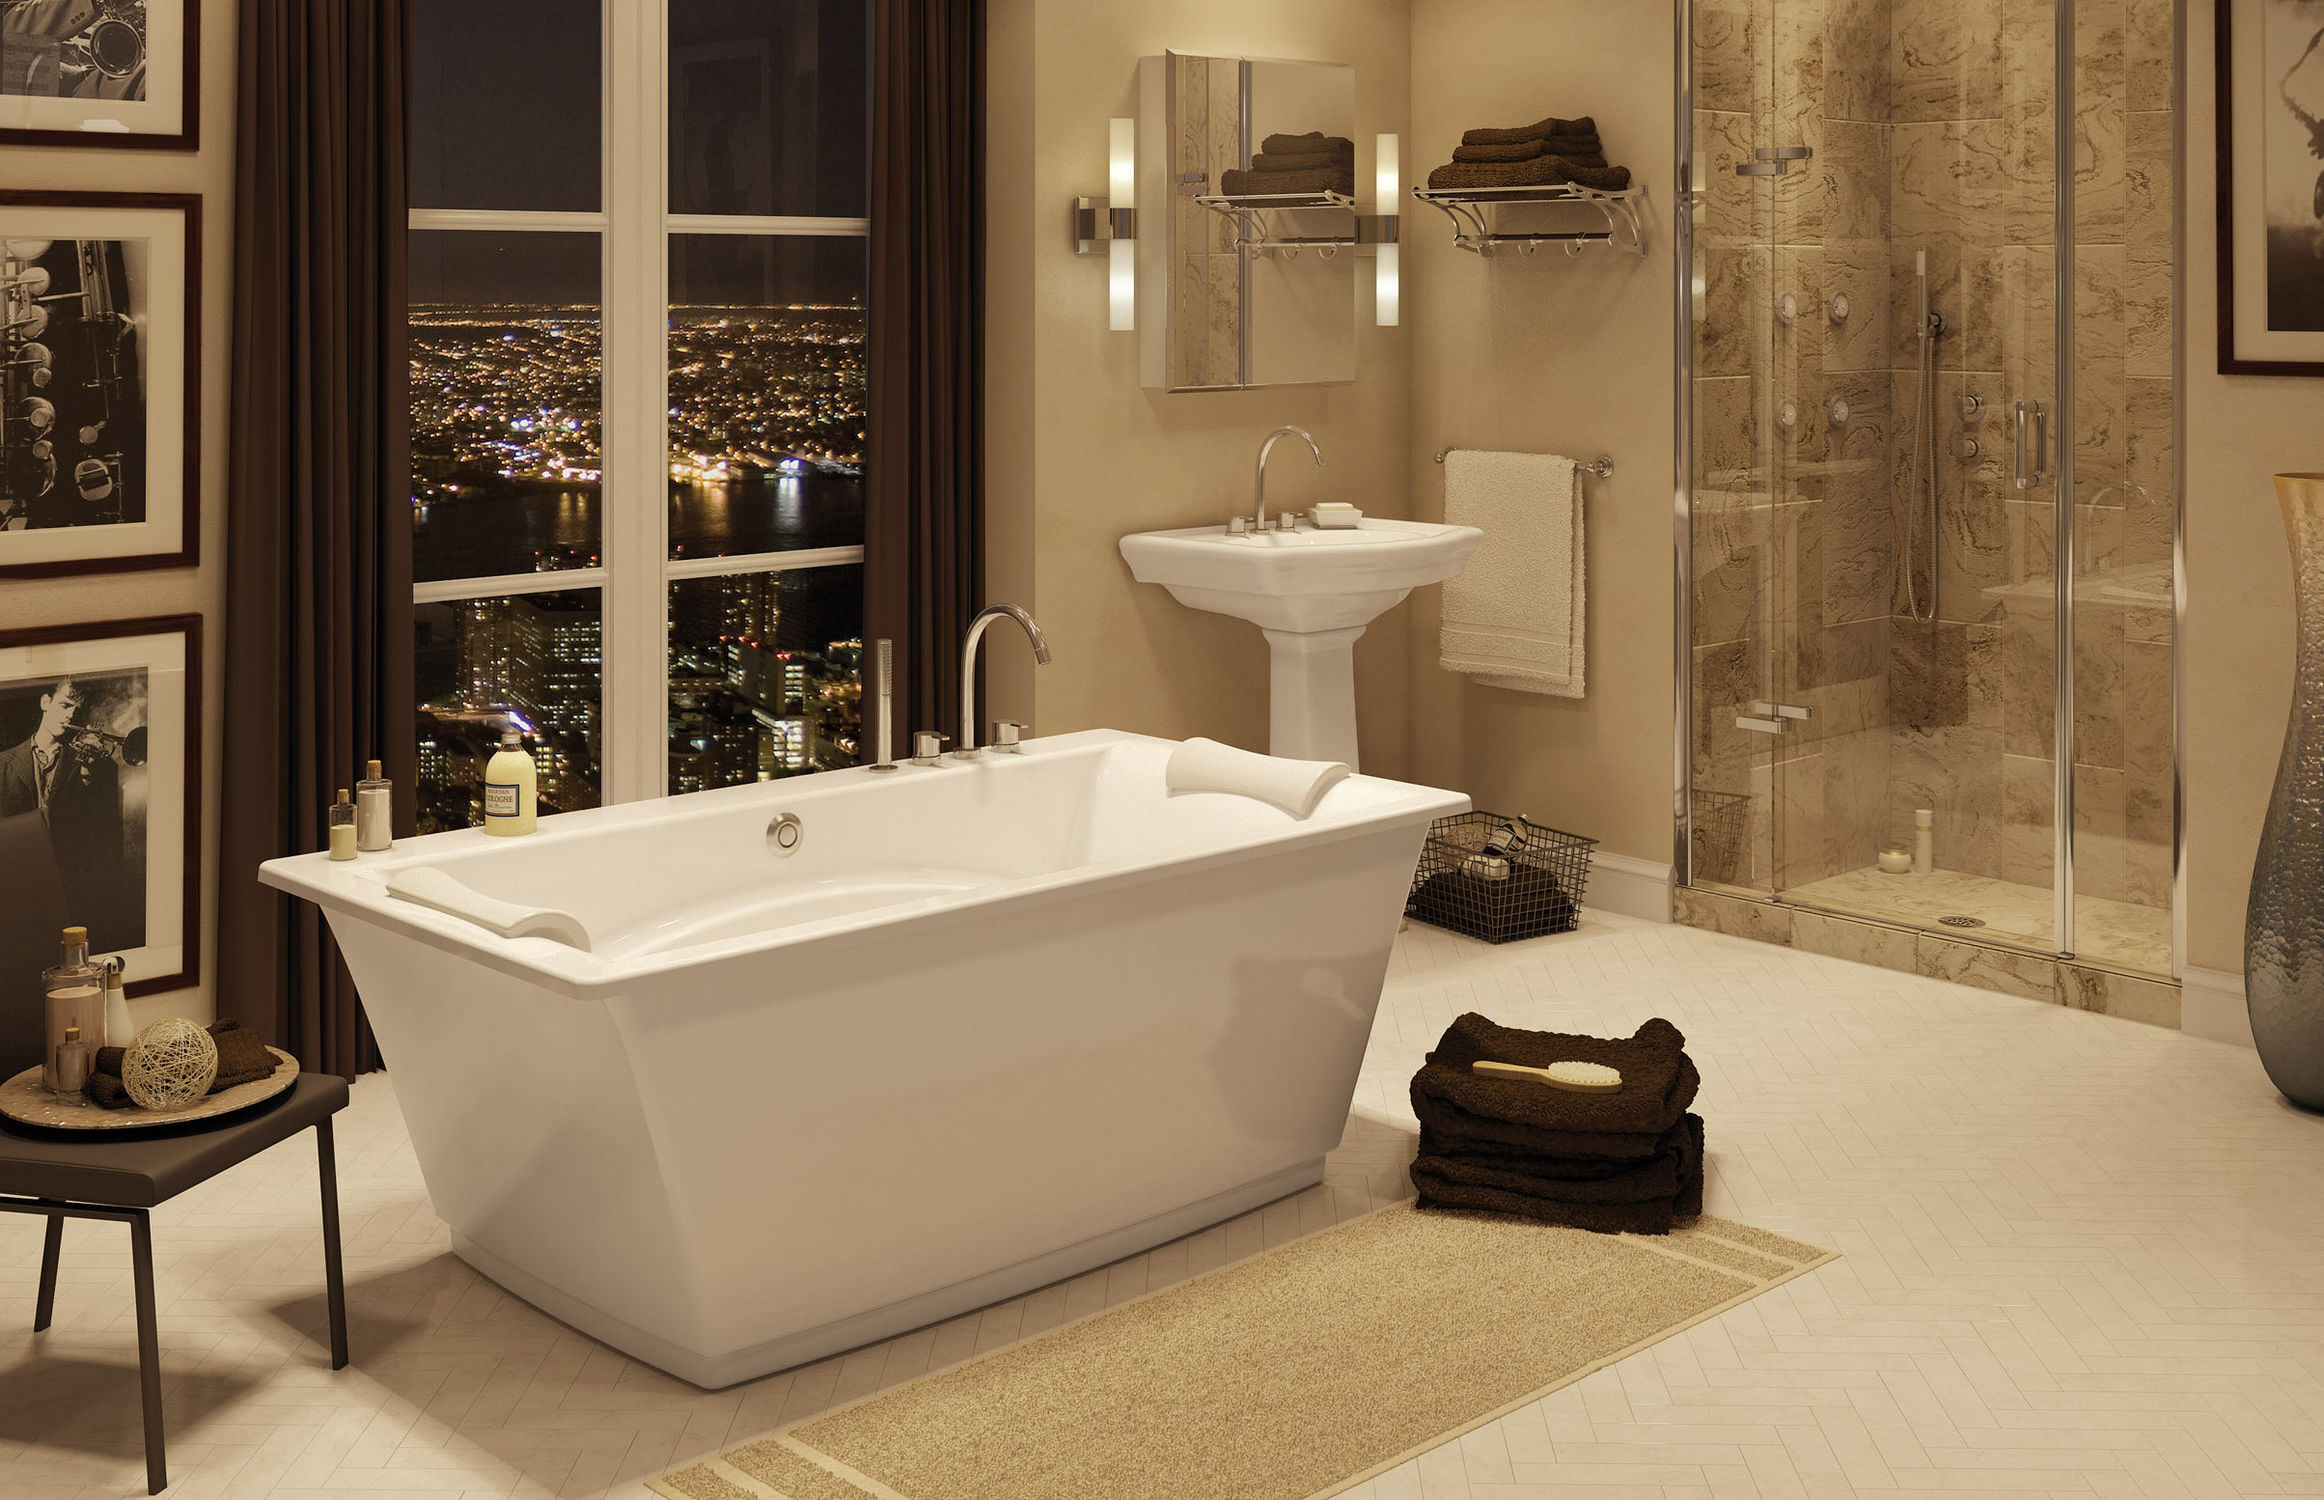 Freestanding bathtub - OPTIK 6636 F - MAAX bathroom